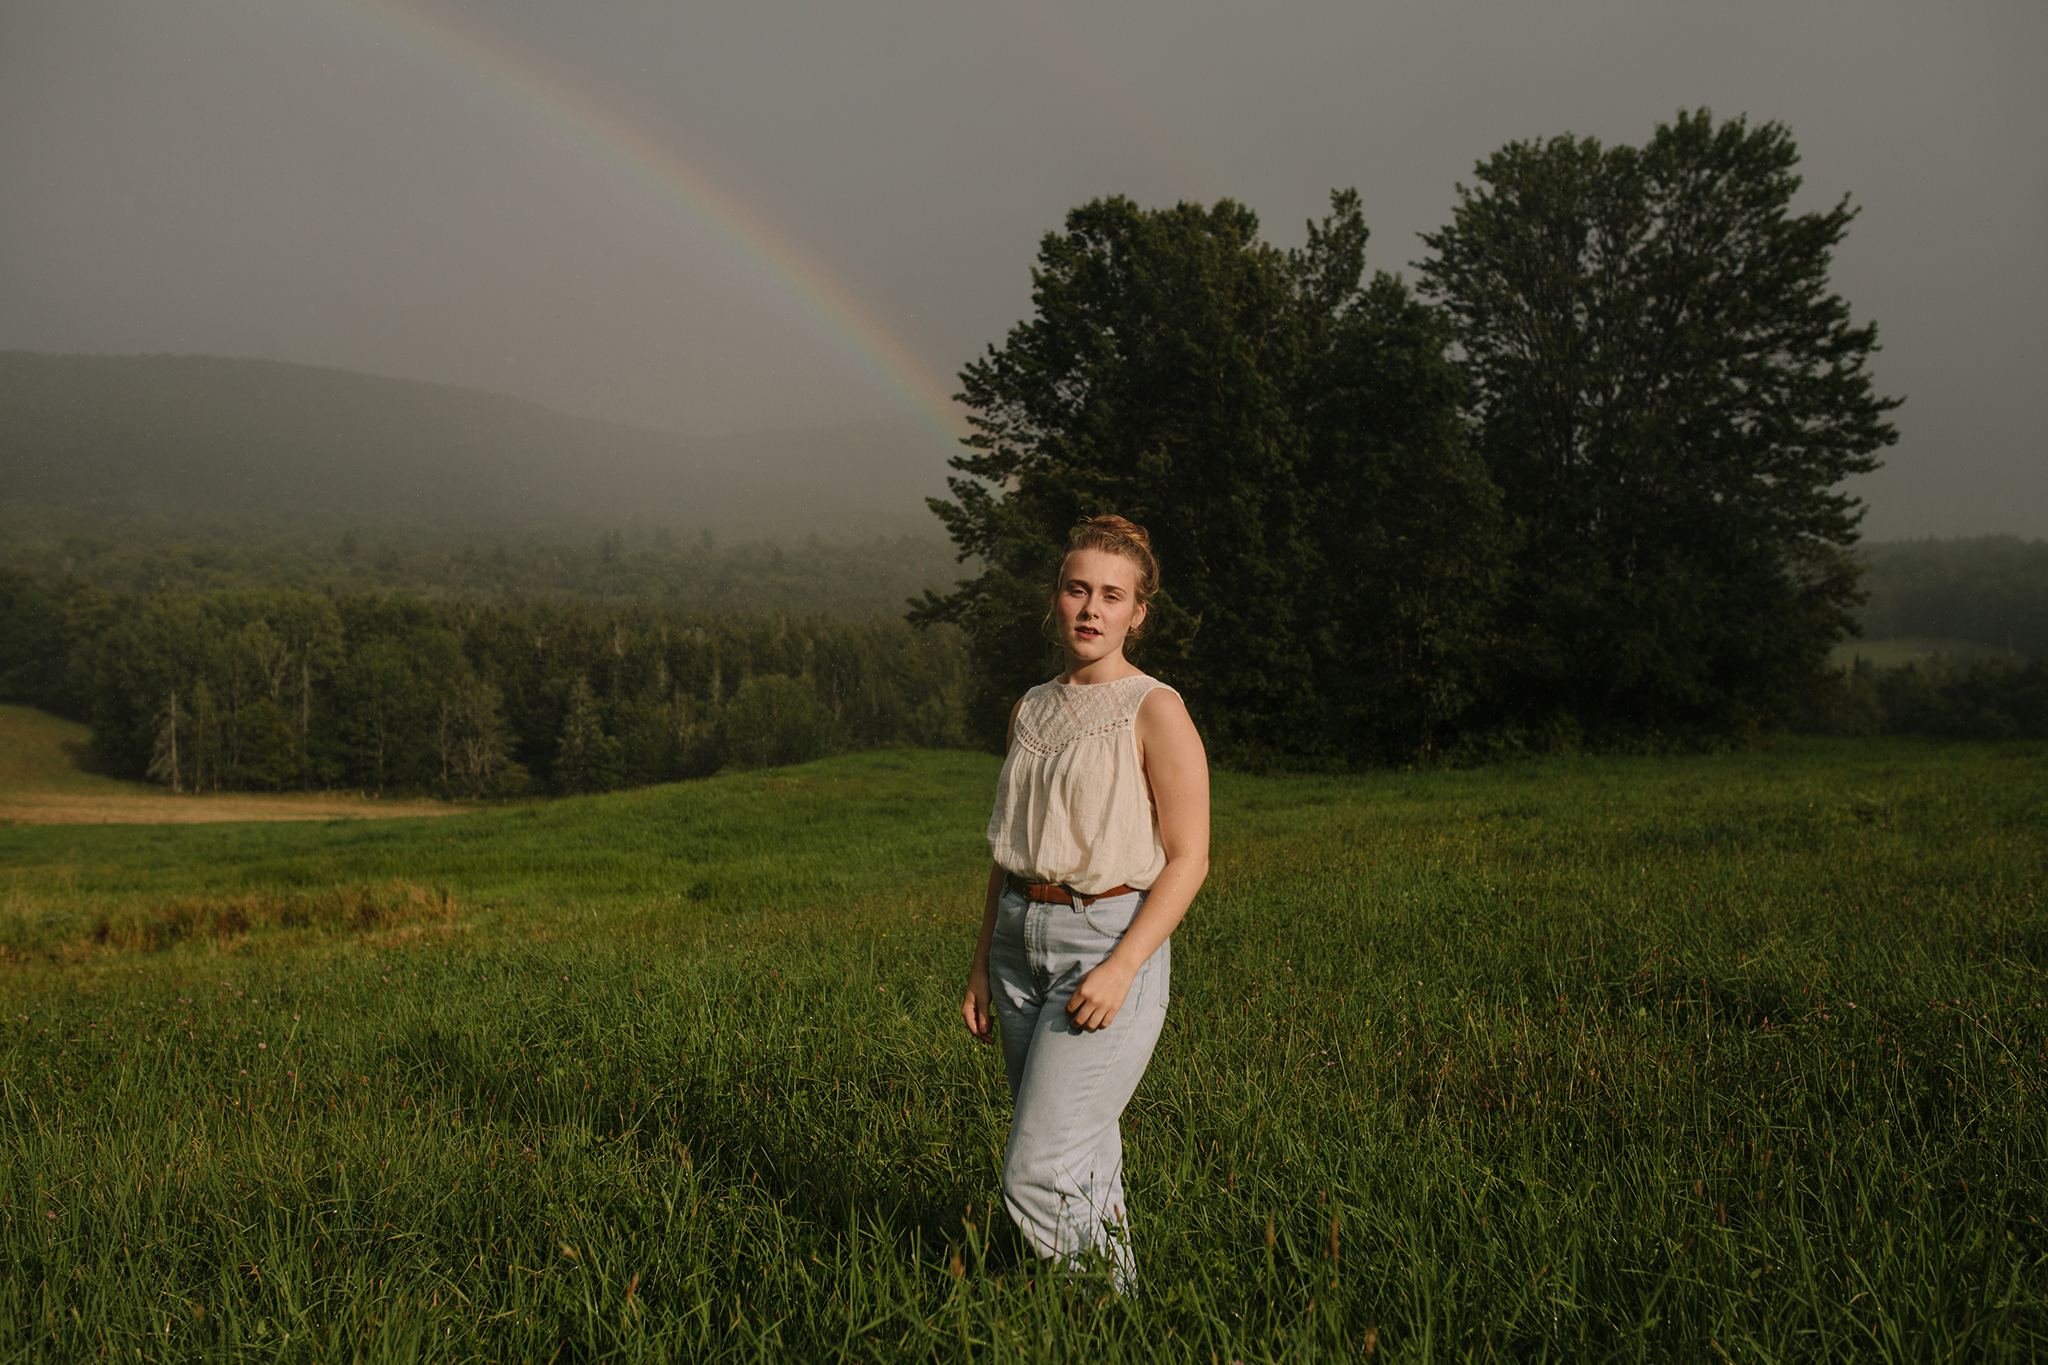 vermont_senior_portraits_photographer01.JPG